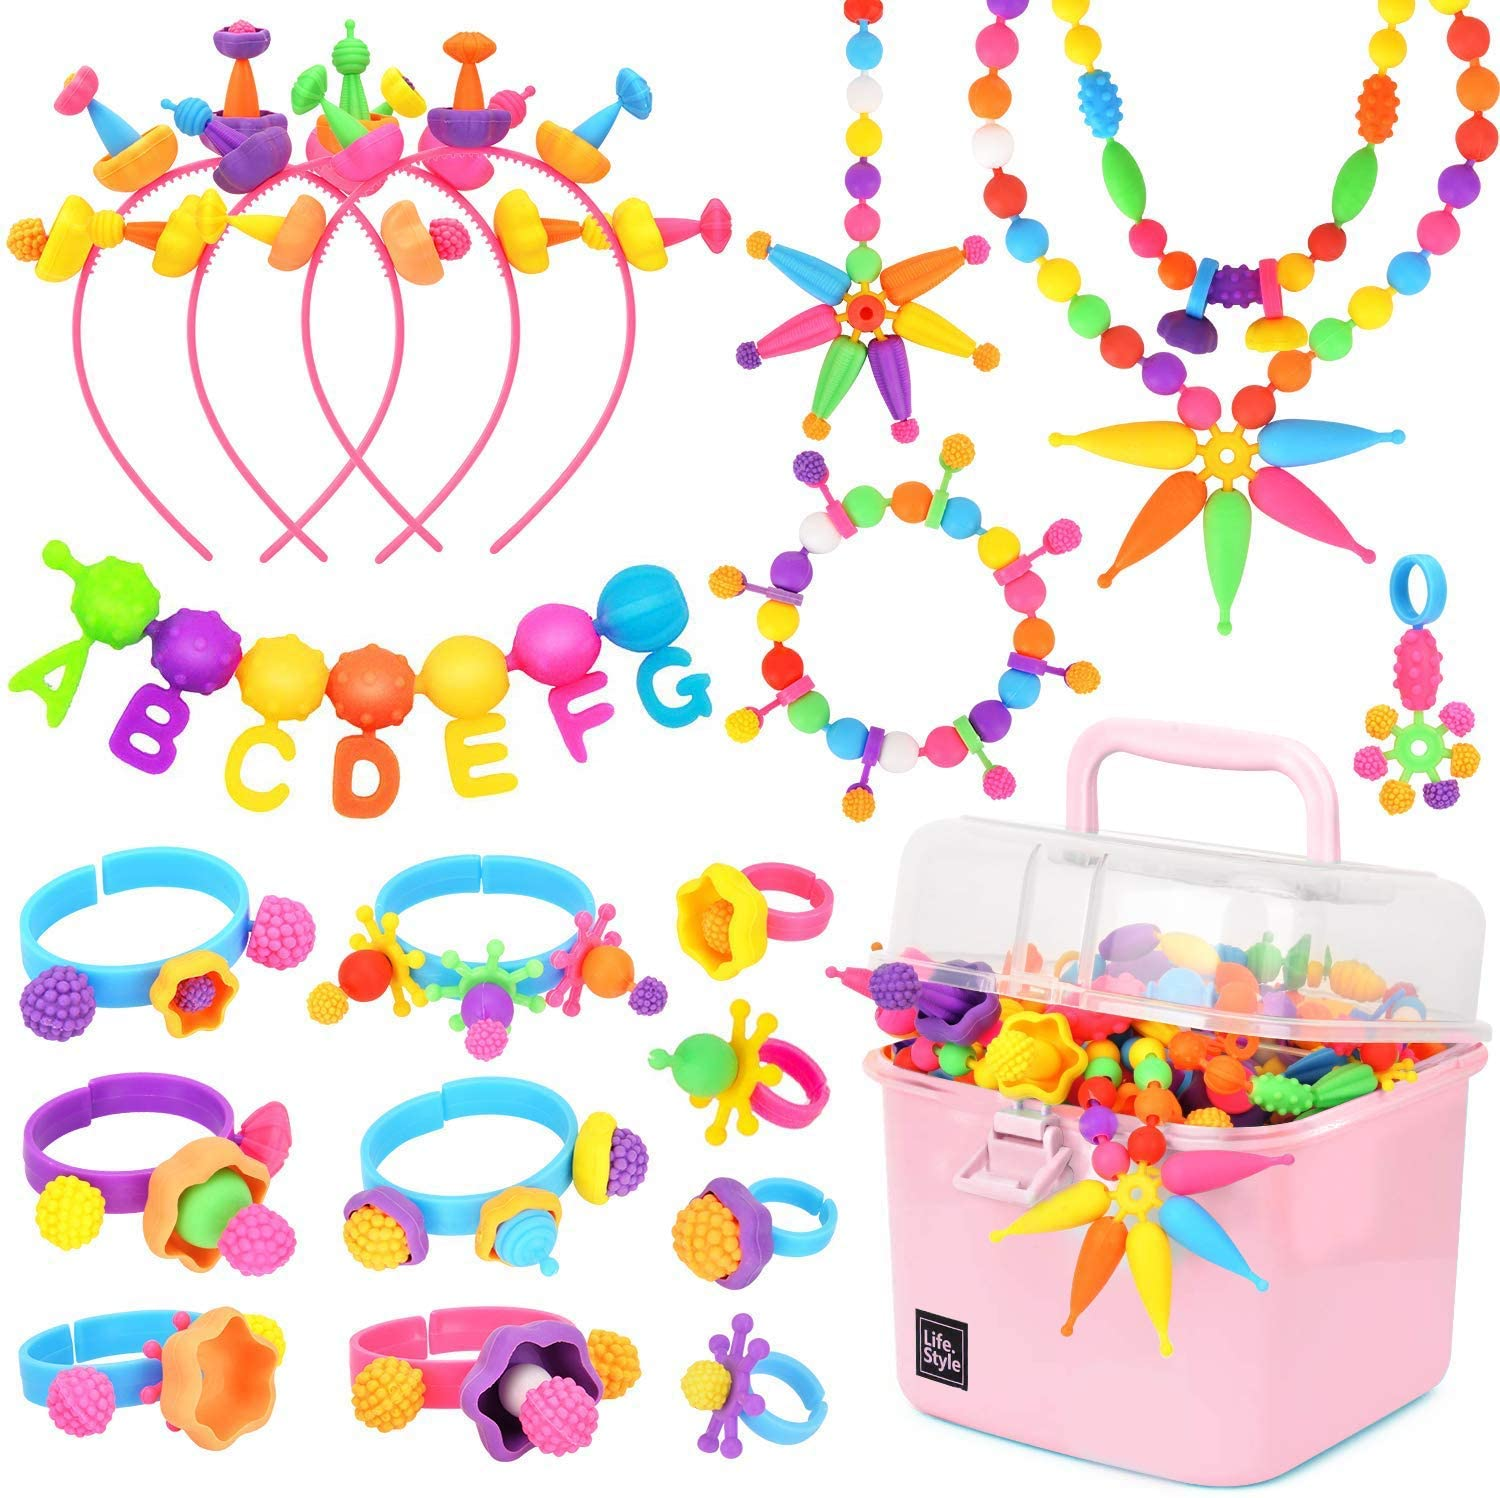 600 PCS Pop Beads,DIY Jewelry Making Kit -Arts And Crafts Toys Gifts For Kids Age 3yr-8yr, 1 Kg Pop Snap Beads Set Making Neckla